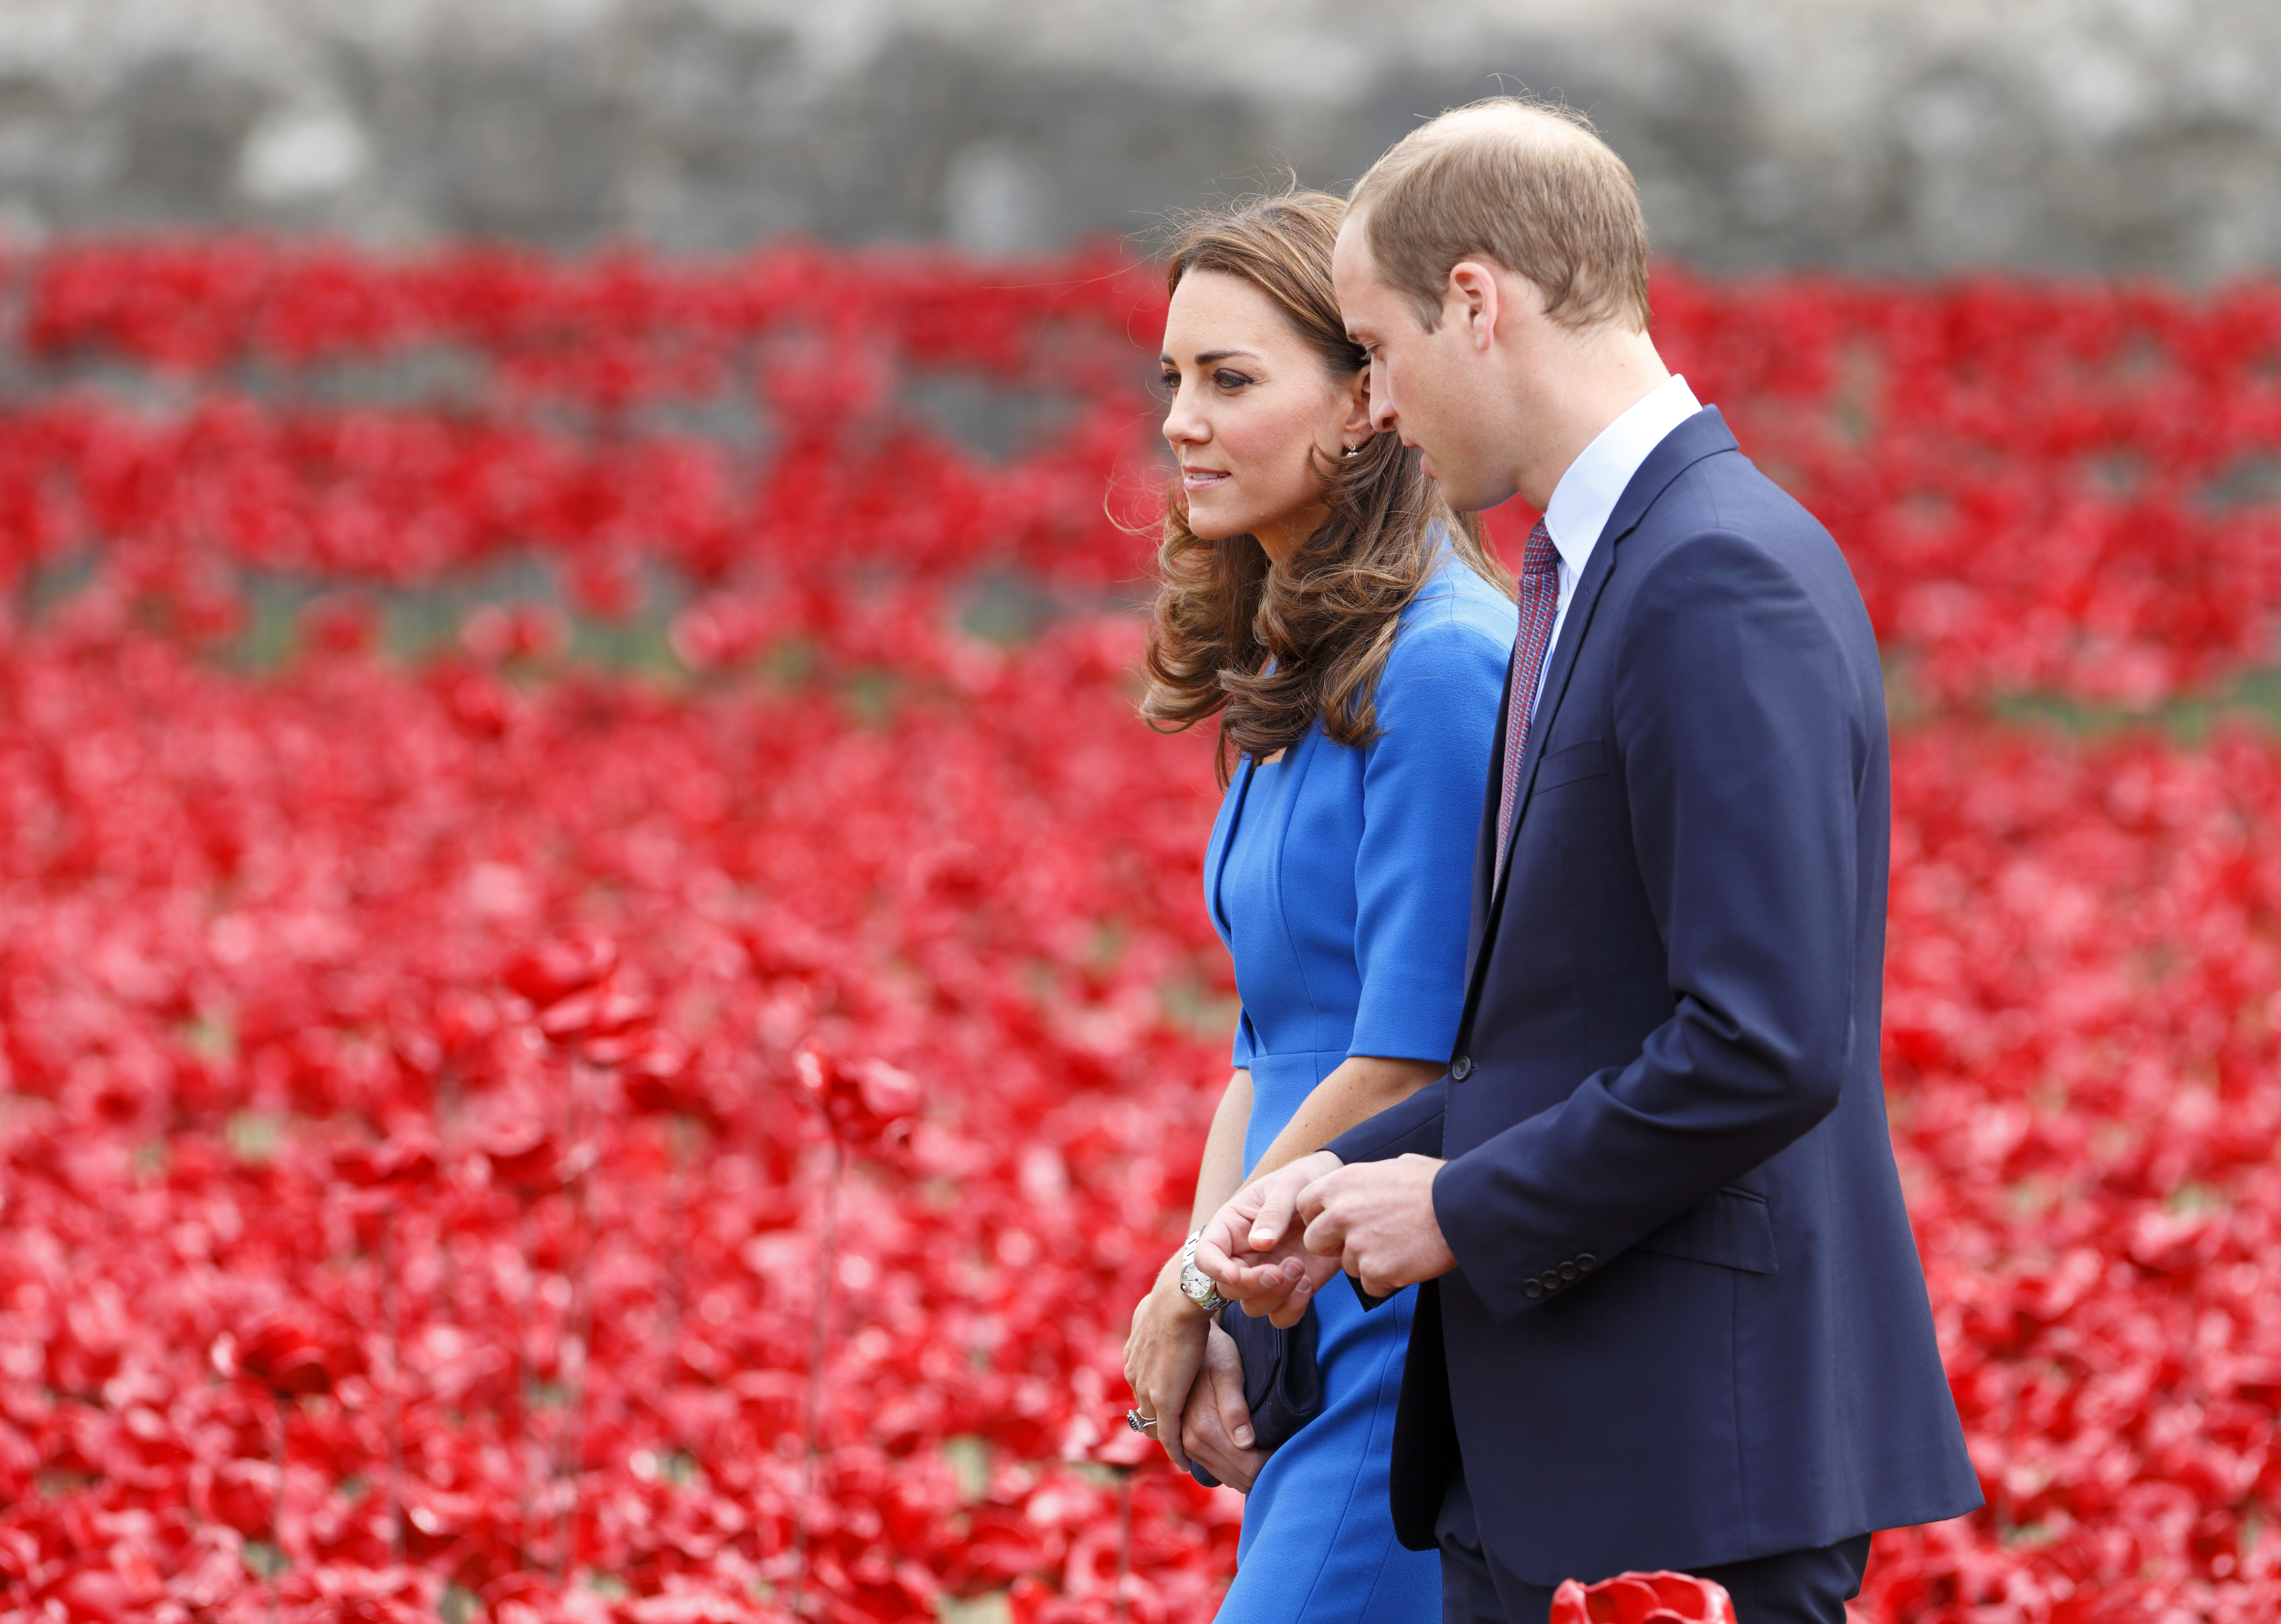 Duke And Duchess Of Cambridge And Prince Harry Visit Tower Of London's Ceramic Poppy Field